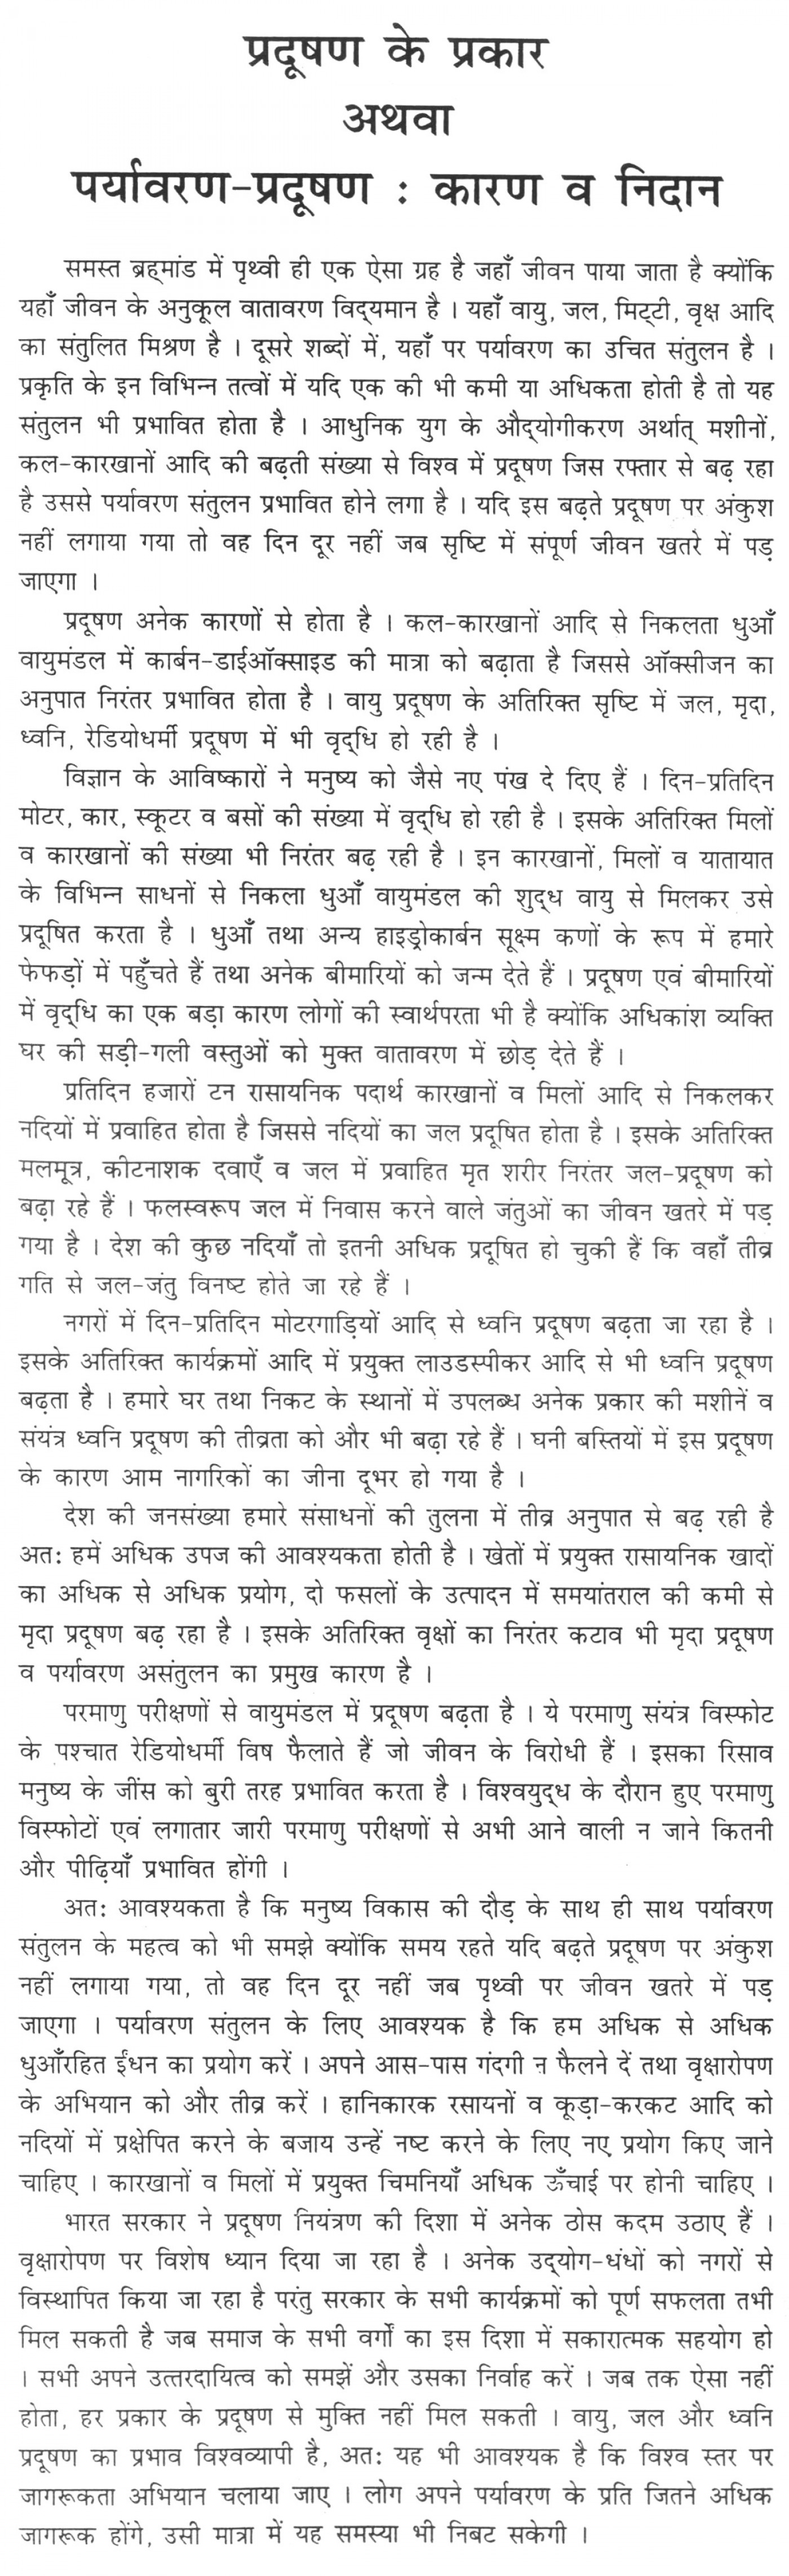 014 Good Habits Essay In Hindi Exceptional Habit Wikipedia Eating 1400